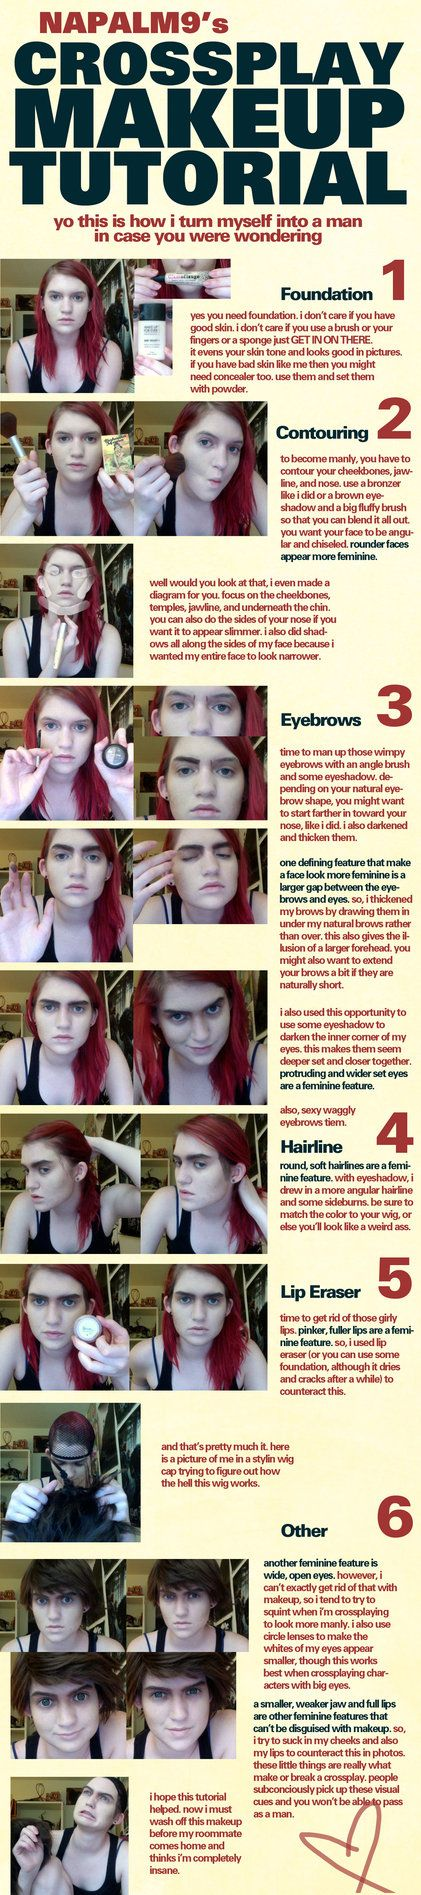 Crossplay Makeup Tutorial by *Napalm9 on deviantART // effing awesome